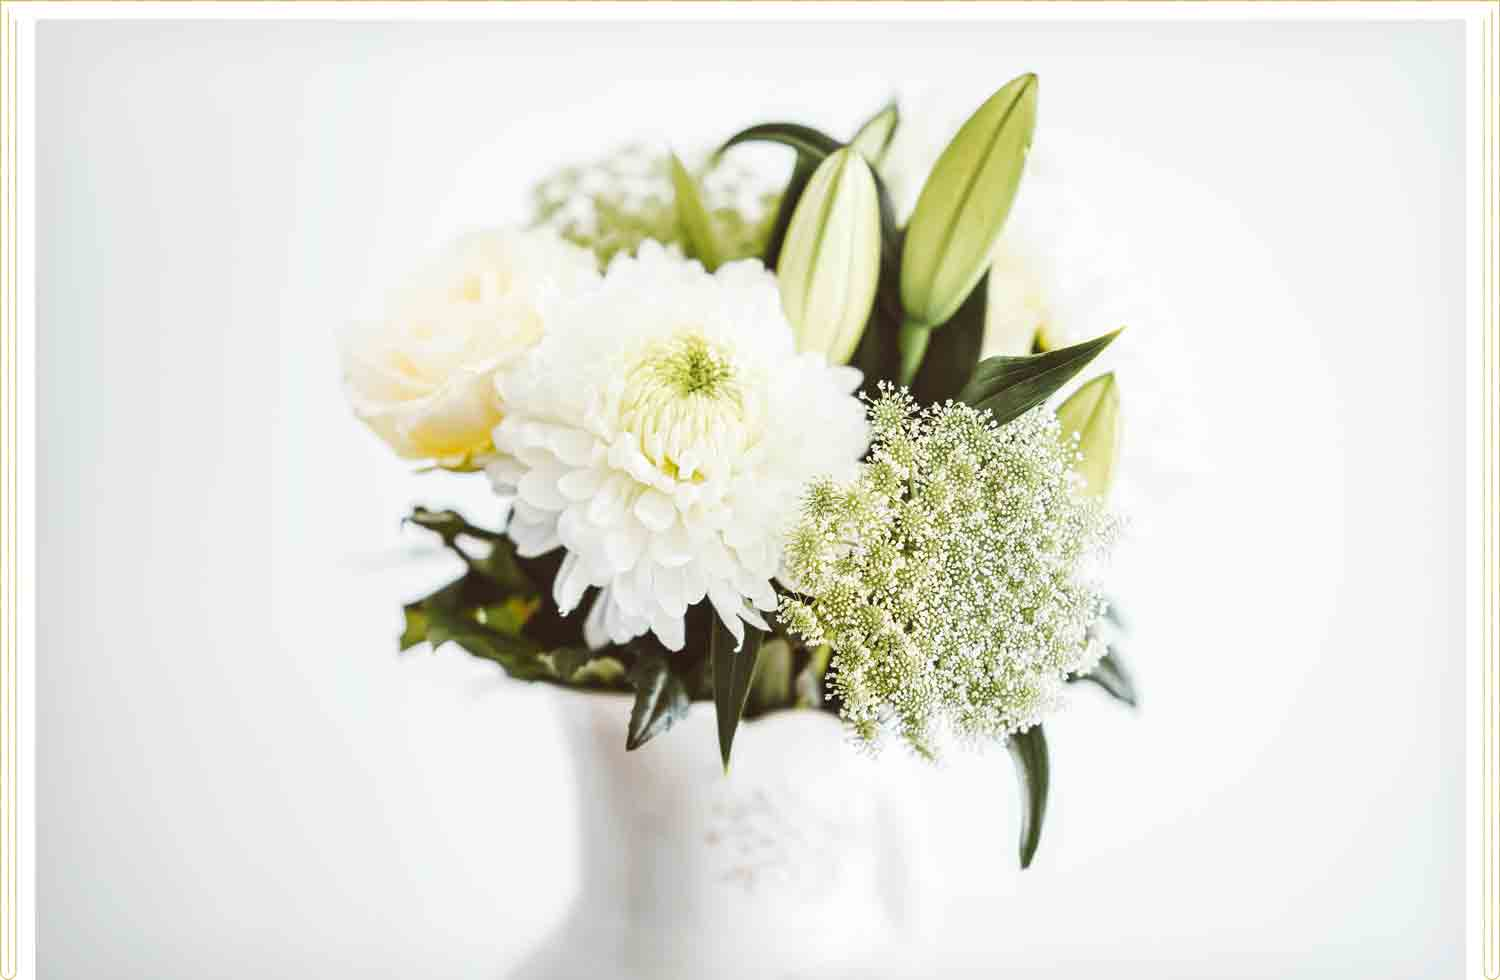 a bouquet of white flowers in a white vase